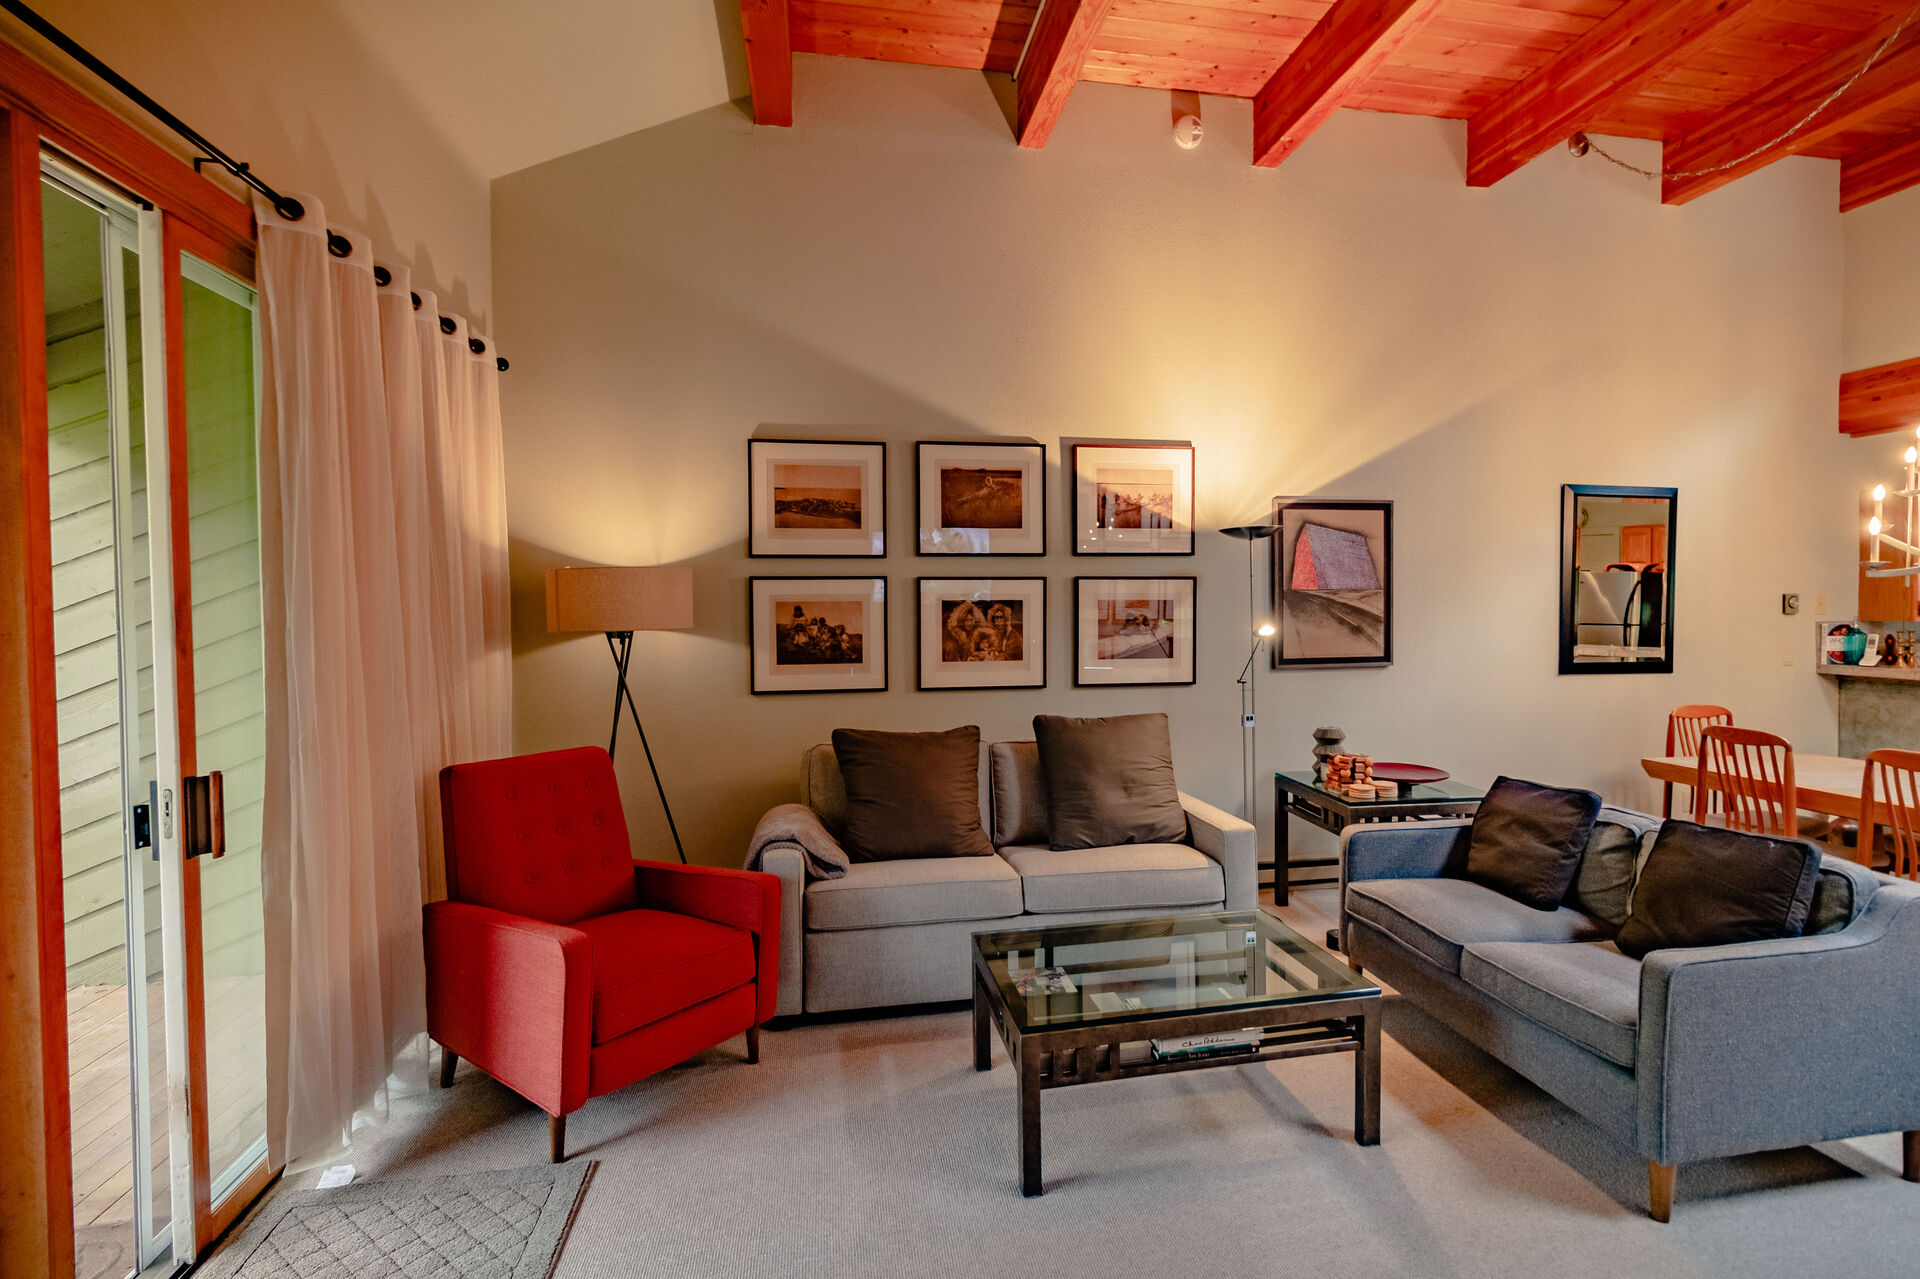 Living Area with High Ceilings and Wood Cross Beams